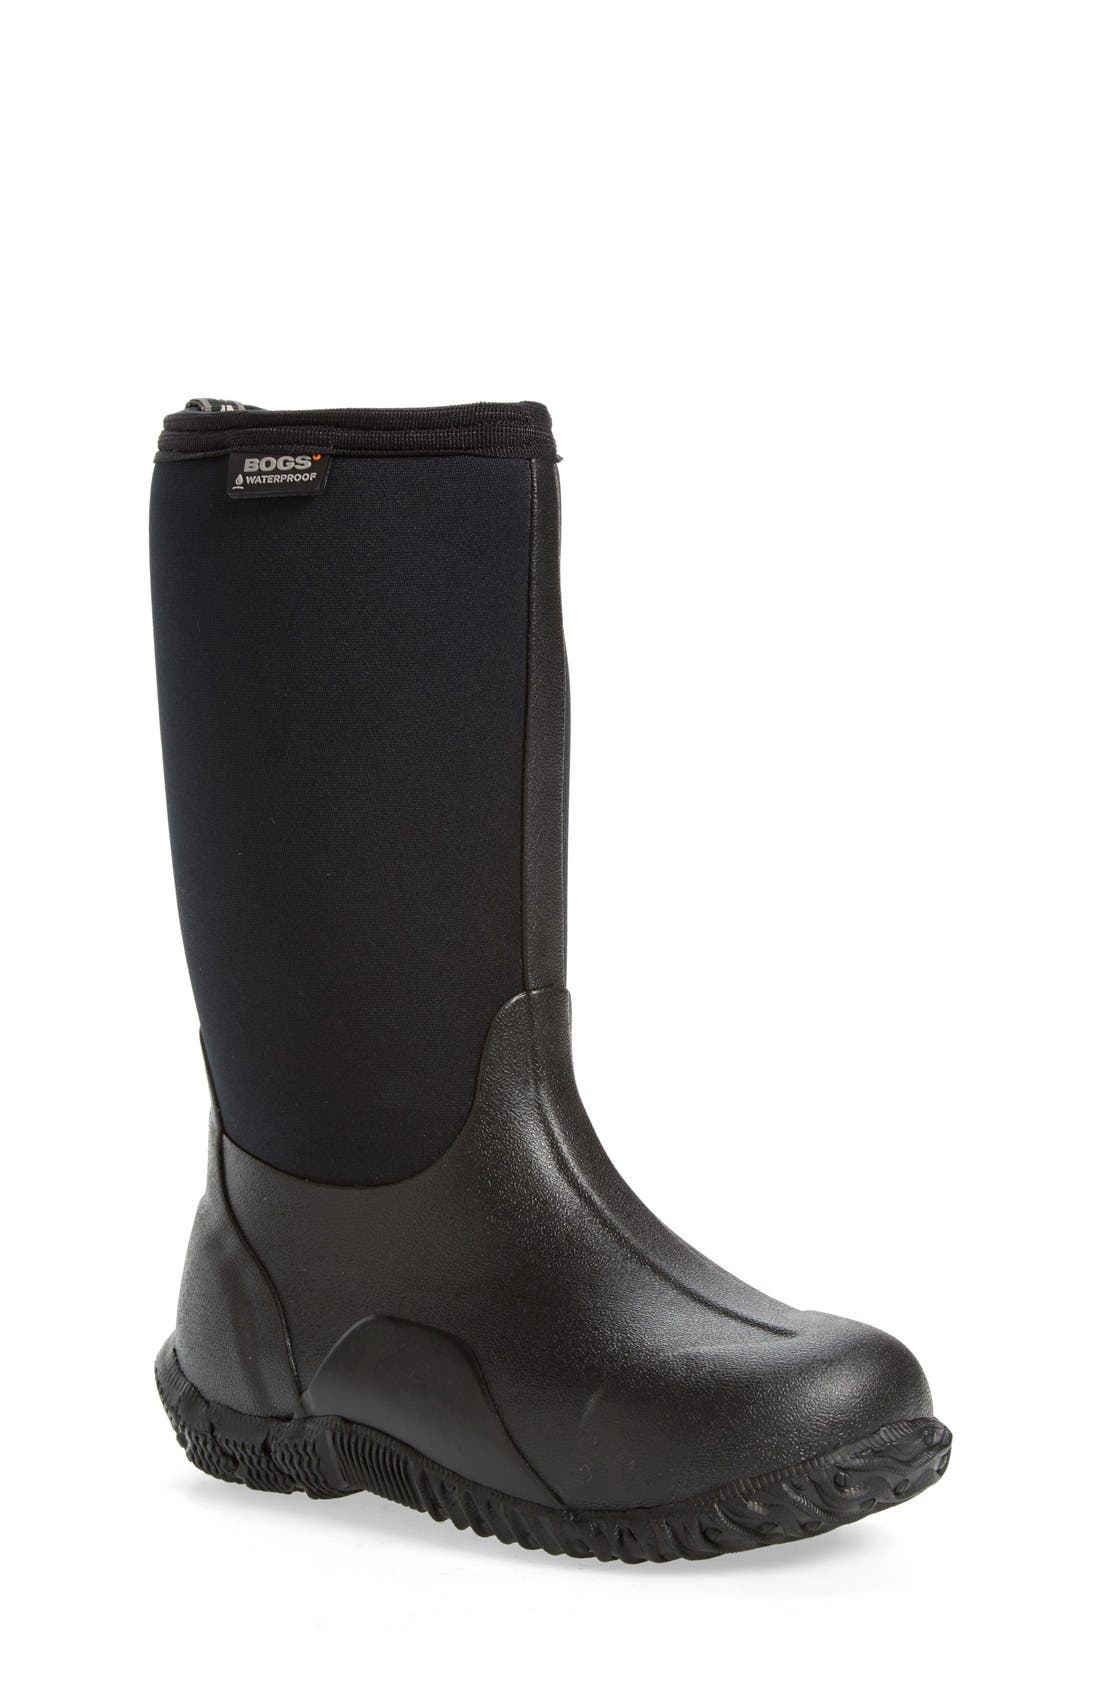 'Classic High' Waterproof Boot,                             Main thumbnail 1, color,                             Black